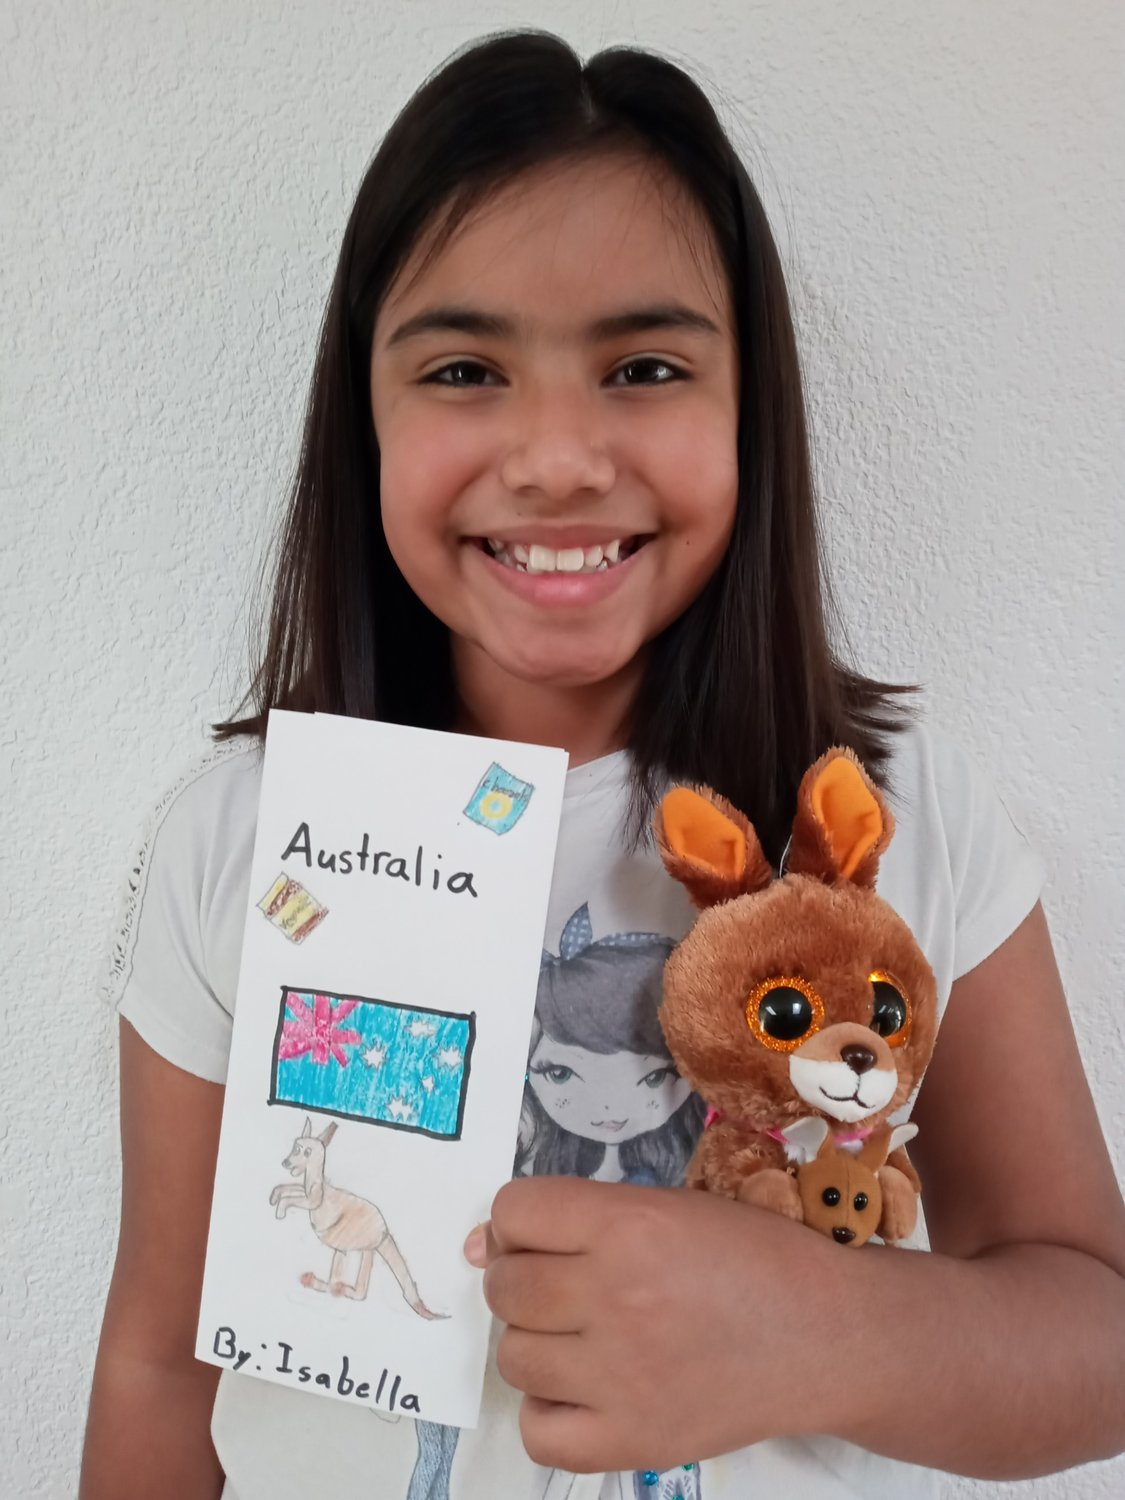 Doña Ana Elementary School fourth grader Isabella Jasso with the brochure she made about Australia.